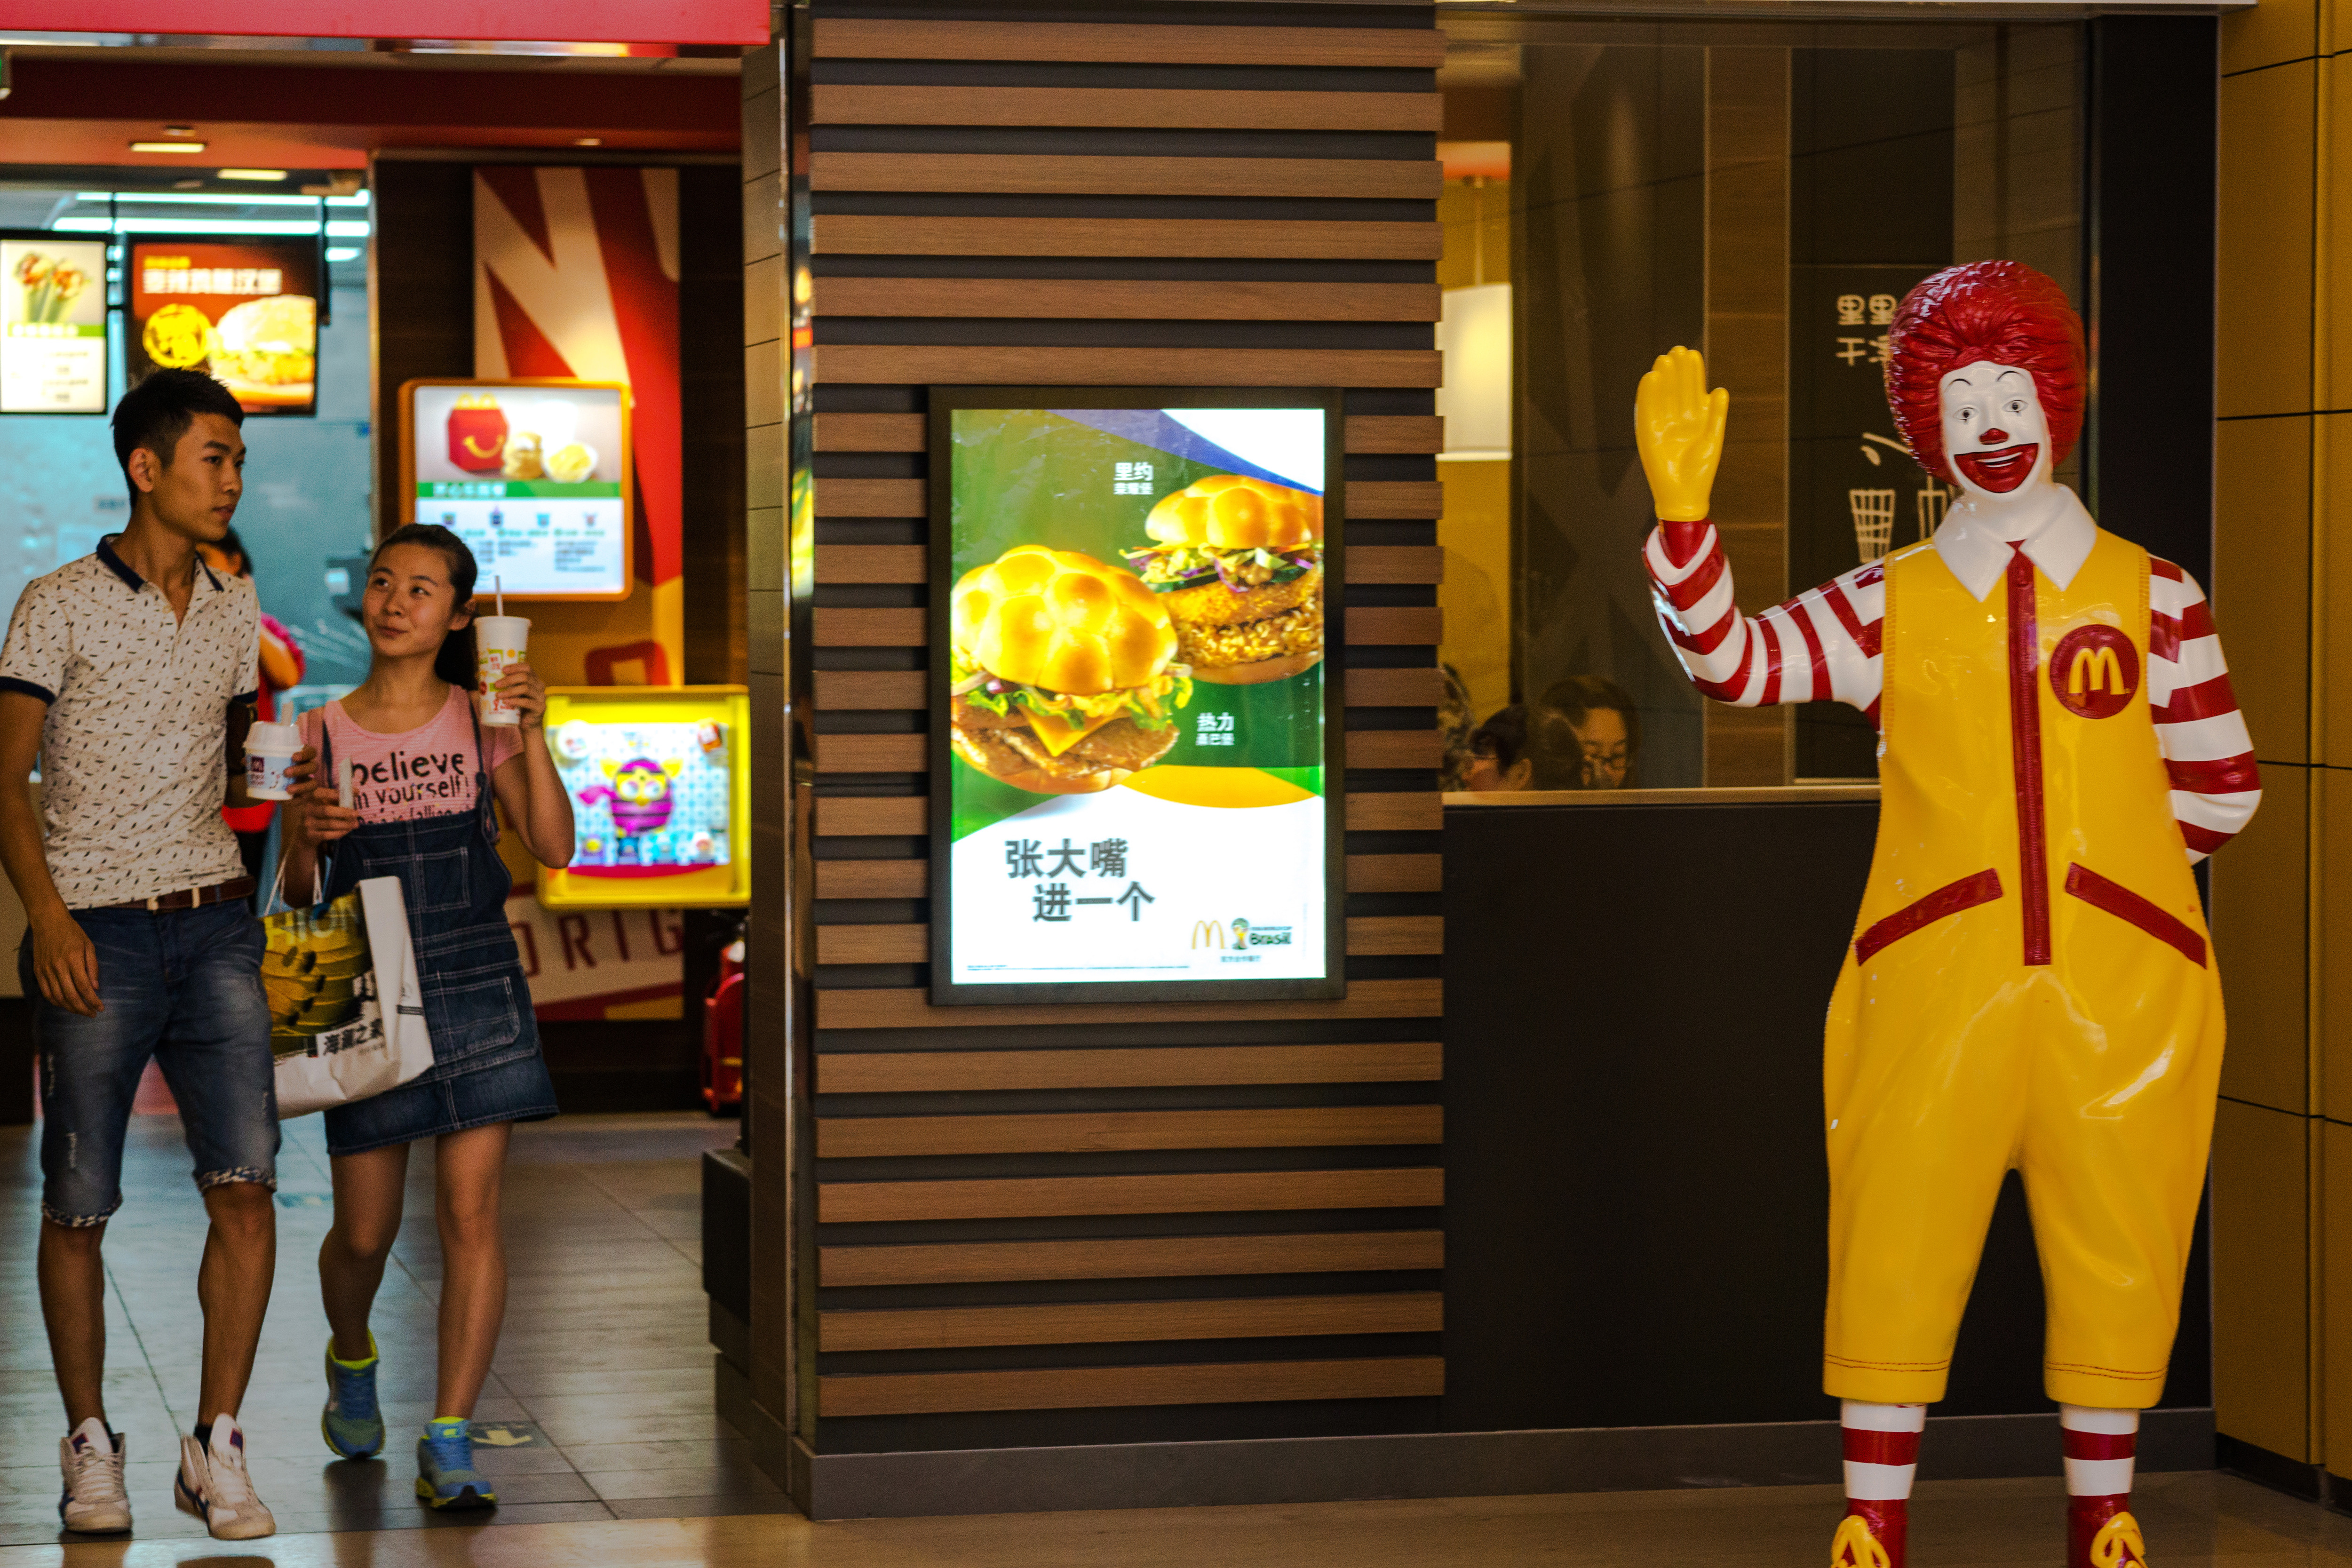 Customers and Ronald McDonald in a McDonalds restaurant